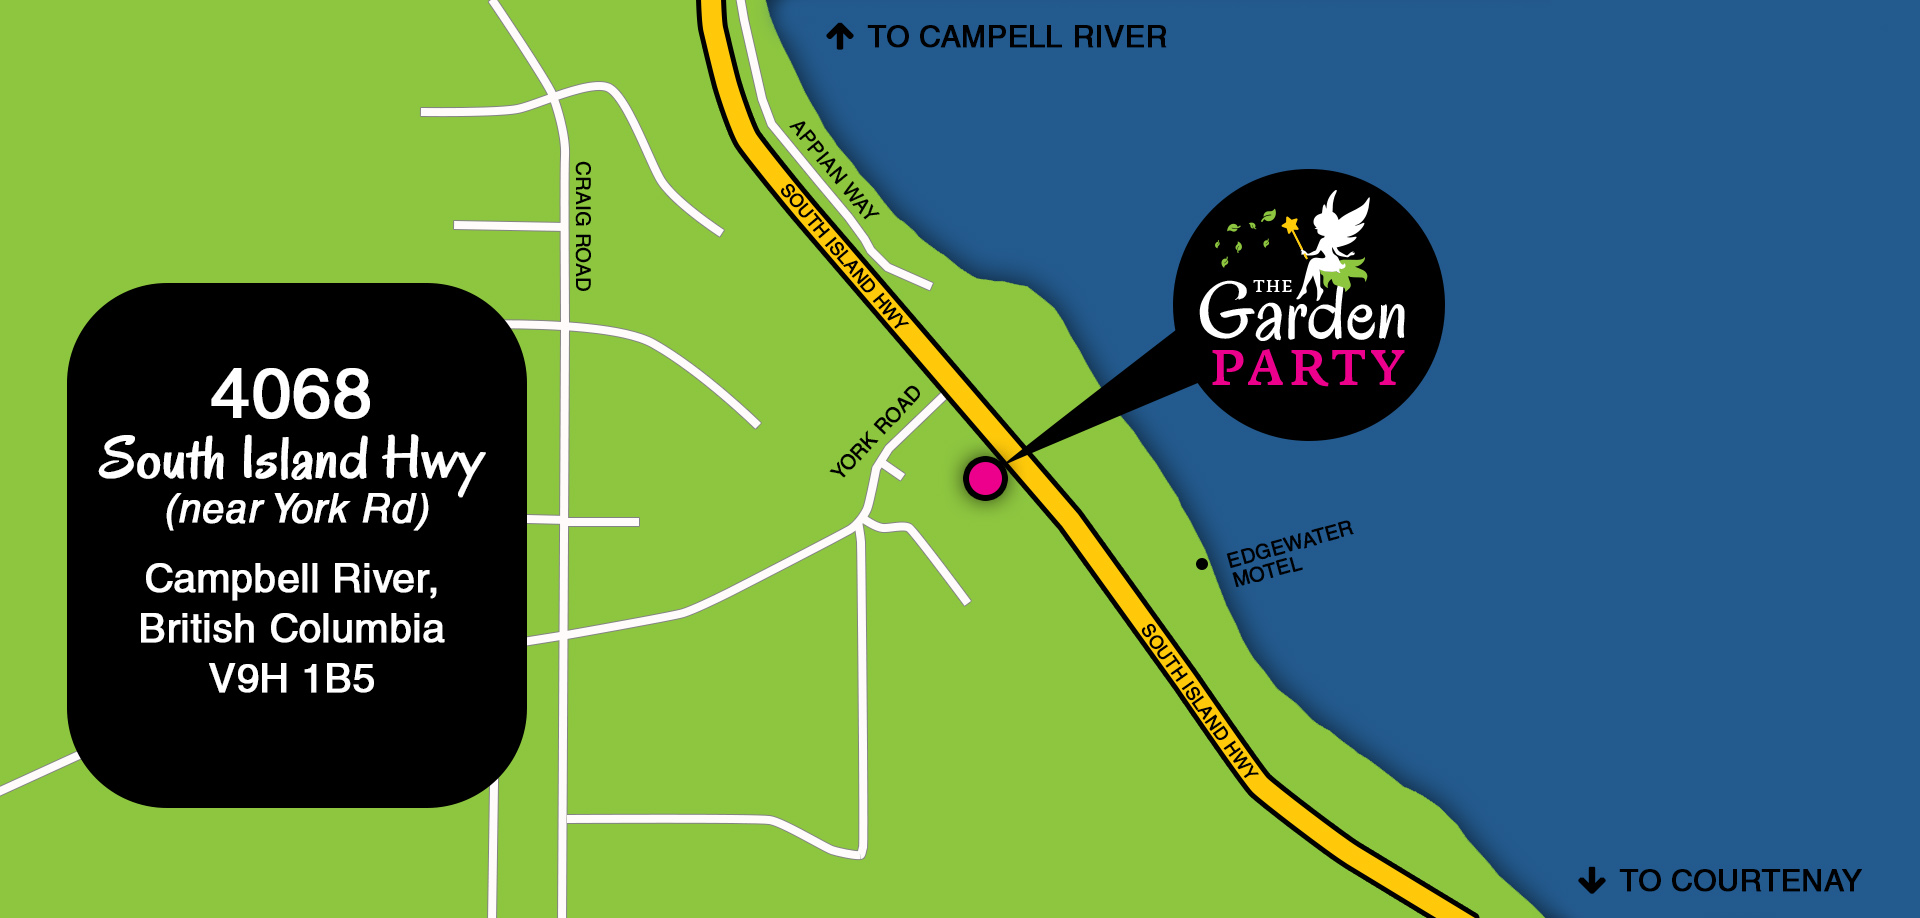 The Garden Party Map